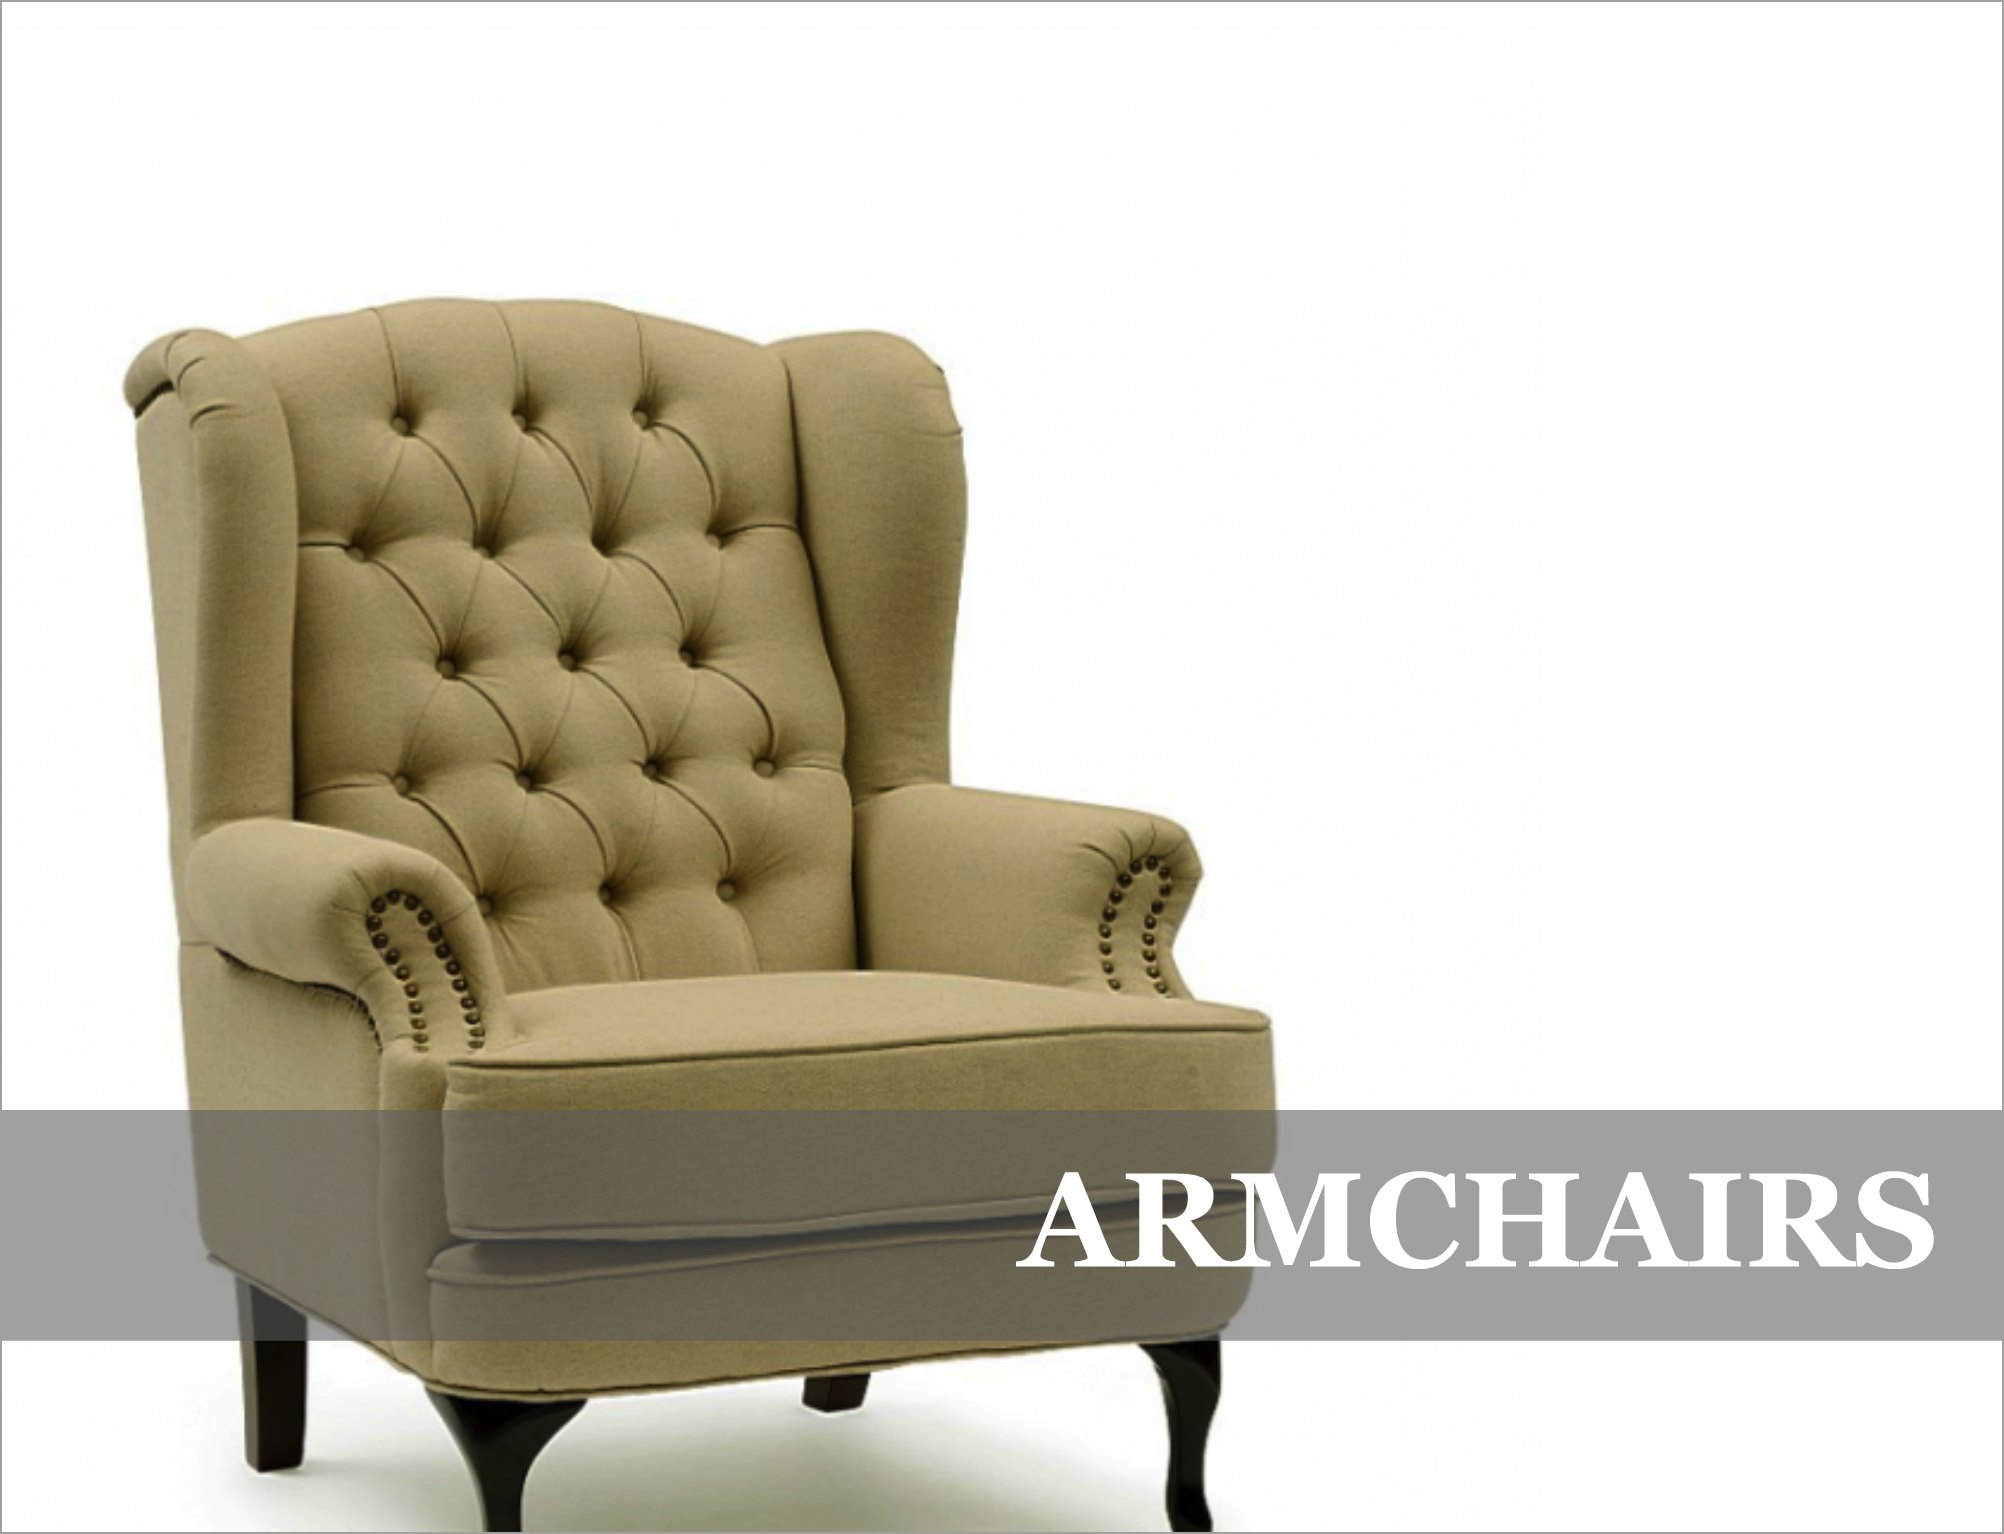 French provincial english sofas · french provincial english upholstered arm chairs